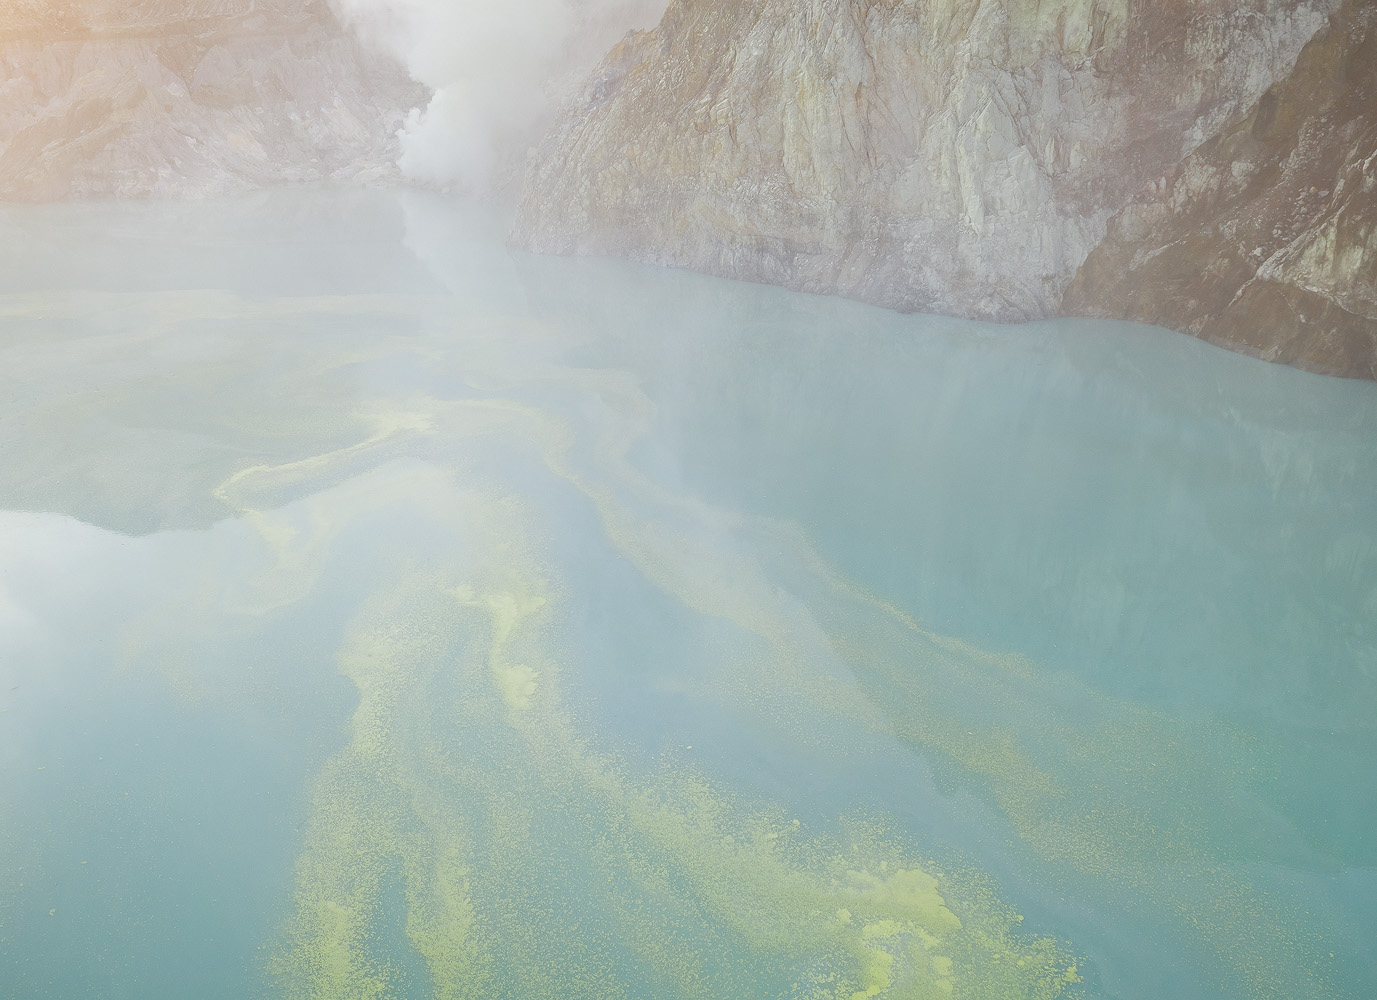 I had some fun trying abstract photography with the drone, as I flew it close to the crater lake. Especially nice was flying the drone through the sulfuric gasses, which create an eerie haze.